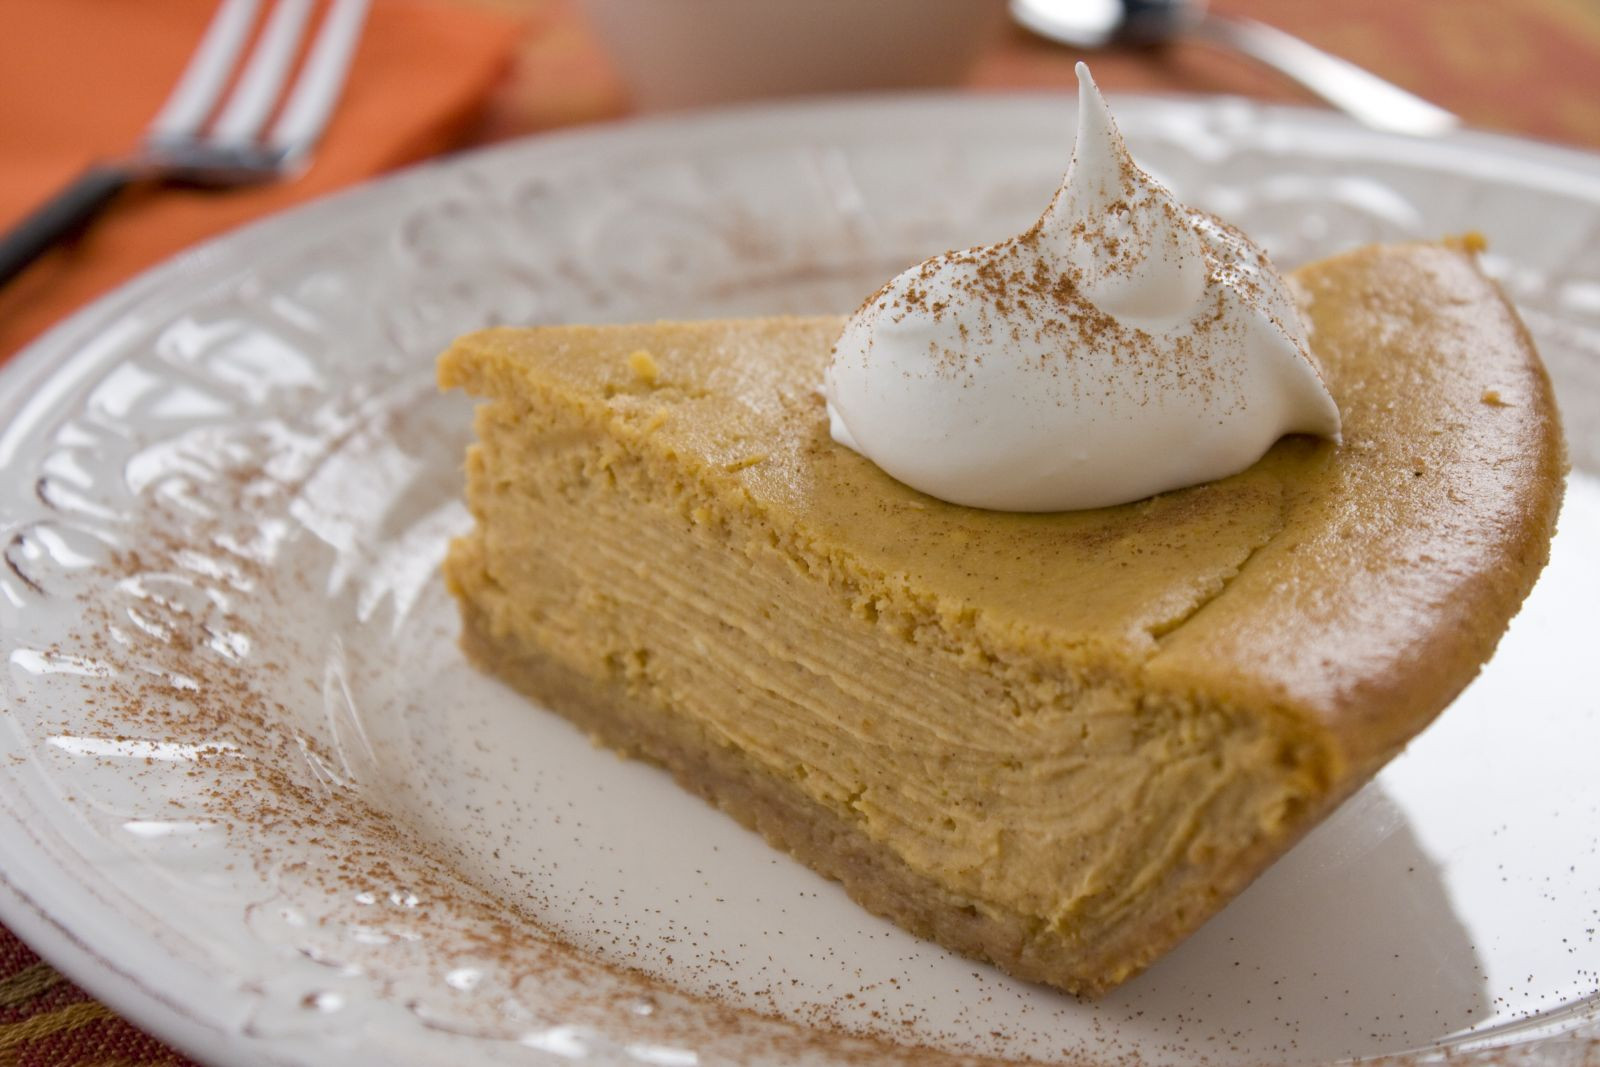 Easiest Desserts To Make  Best Homemade Desserts with Pie Fillings